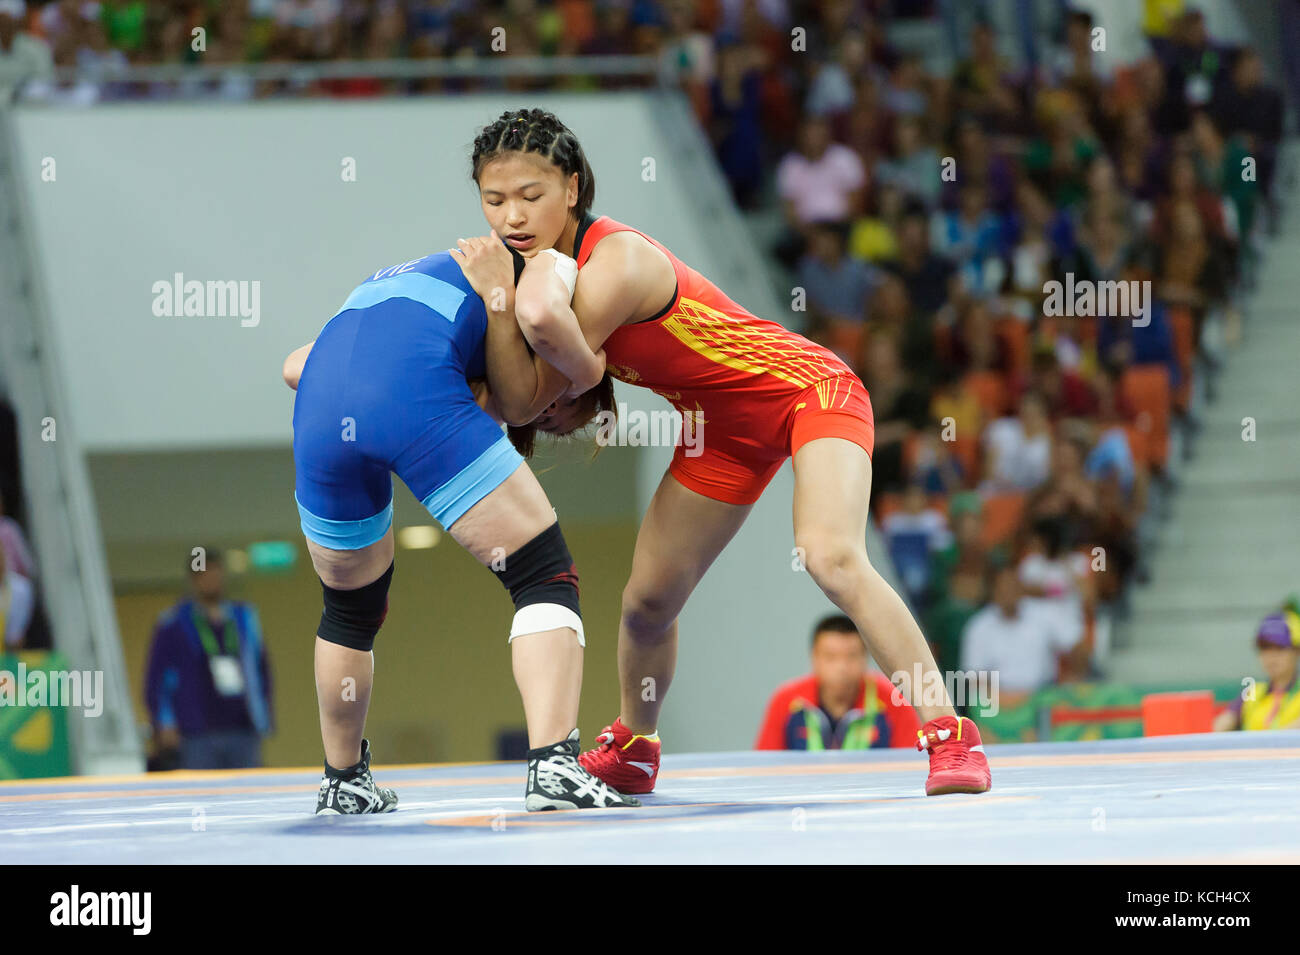 Womens Wrestling Stock Photos & Womens Wrestling Stock Images - Alamy